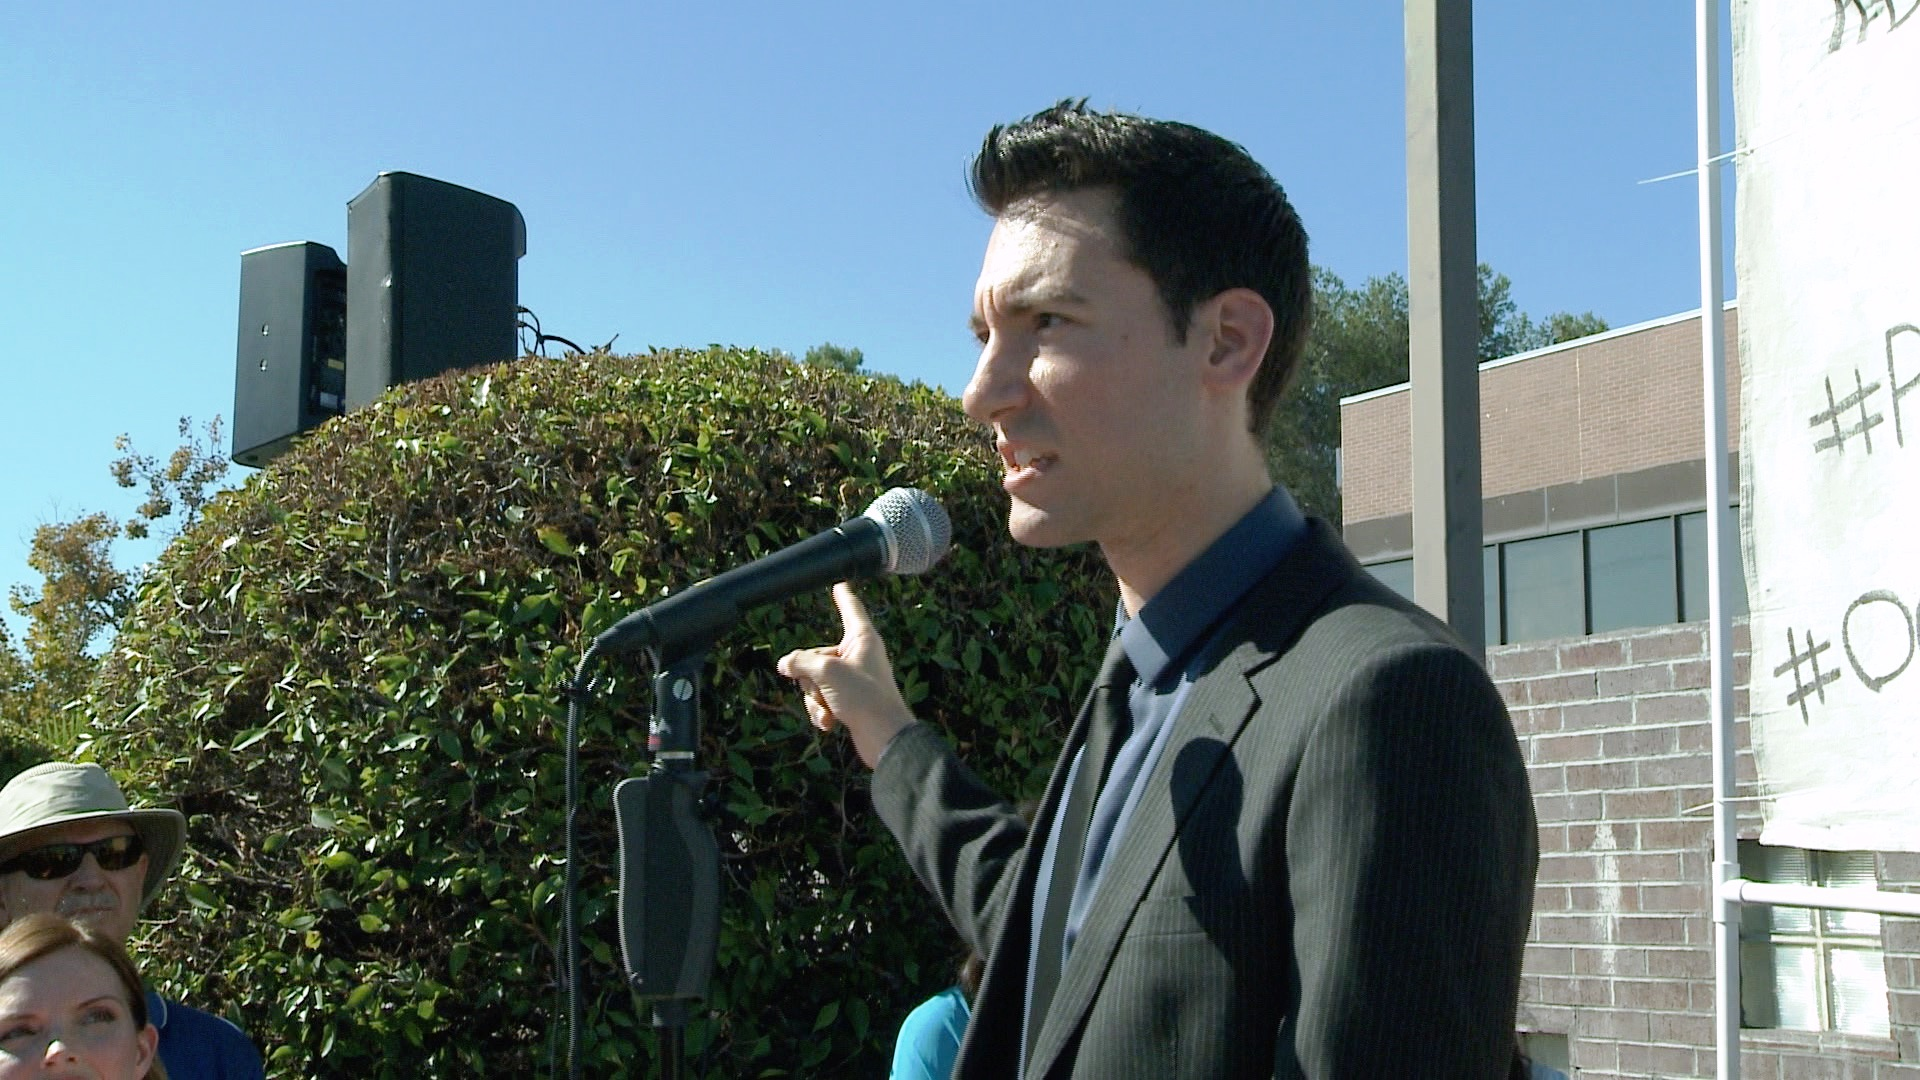 David Daleiden - Planned Parenthood Protest 10-10-15